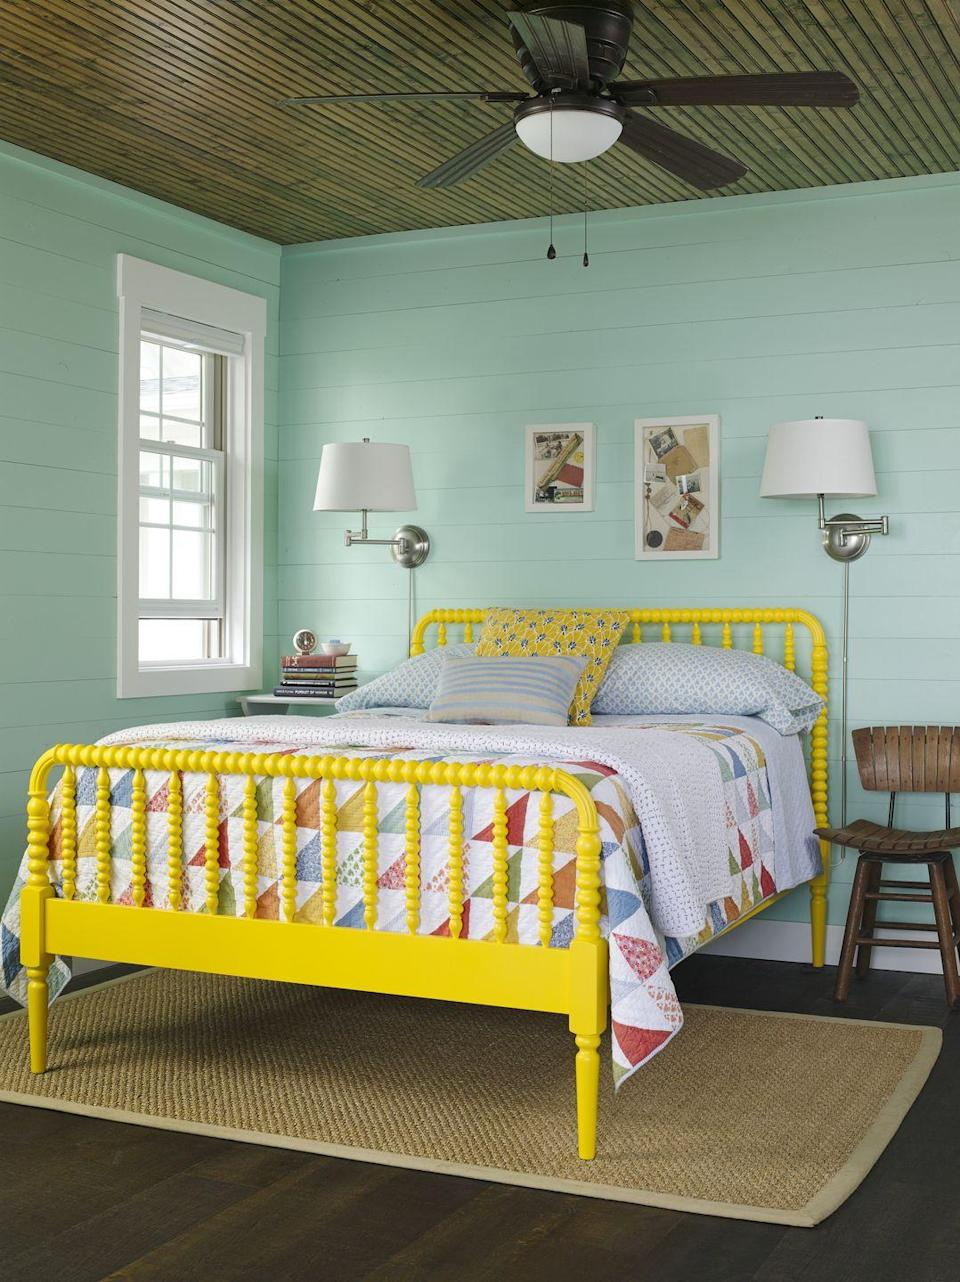 """<p>A beach house or lake cottage is a place to kick back and have fun, so choose a color palette that reflects that sentiment. Seafoam green and school bus yellow may <em>sound</em> over the top, but the duo actually works in this bedroom because the """"cool"""" wall color takes the edge off of the """"hot"""" bed frame. Choosing a quilt or comforter that features both tones bridges the gap. </p><p><strong>Get the Look: </strong><br>Wall Paint Color: <a href=""""https://store.benjaminmoore.com/storefront/index.ep"""" rel=""""nofollow noopener"""" target=""""_blank"""" data-ylk=""""slk:Sea Mist Green by Benjamin Moore"""" class=""""link rapid-noclick-resp"""">Sea Mist Green by Benjamin Moore<br></a>Bed: <a href=""""https://go.redirectingat.com?id=74968X1596630&url=https%3A%2F%2Fwww.wayfair.com%2Fbaby-kids%2Fpdp%2Flittle-seeds-rowan-valley-panel-bed-w002966713.html&sref=https%3A%2F%2Fwww.countryliving.com%2Fremodeling-renovation%2Fhome-makeovers%2Fg32468539%2Fbest-bedroom-paint-colors-ideas%2F"""" rel=""""nofollow noopener"""" target=""""_blank"""" data-ylk=""""slk:Jenny Lind Bed; wayfair.com"""" class=""""link rapid-noclick-resp"""">Jenny Lind Bed; <em>wayfair.com</em></a></p>"""